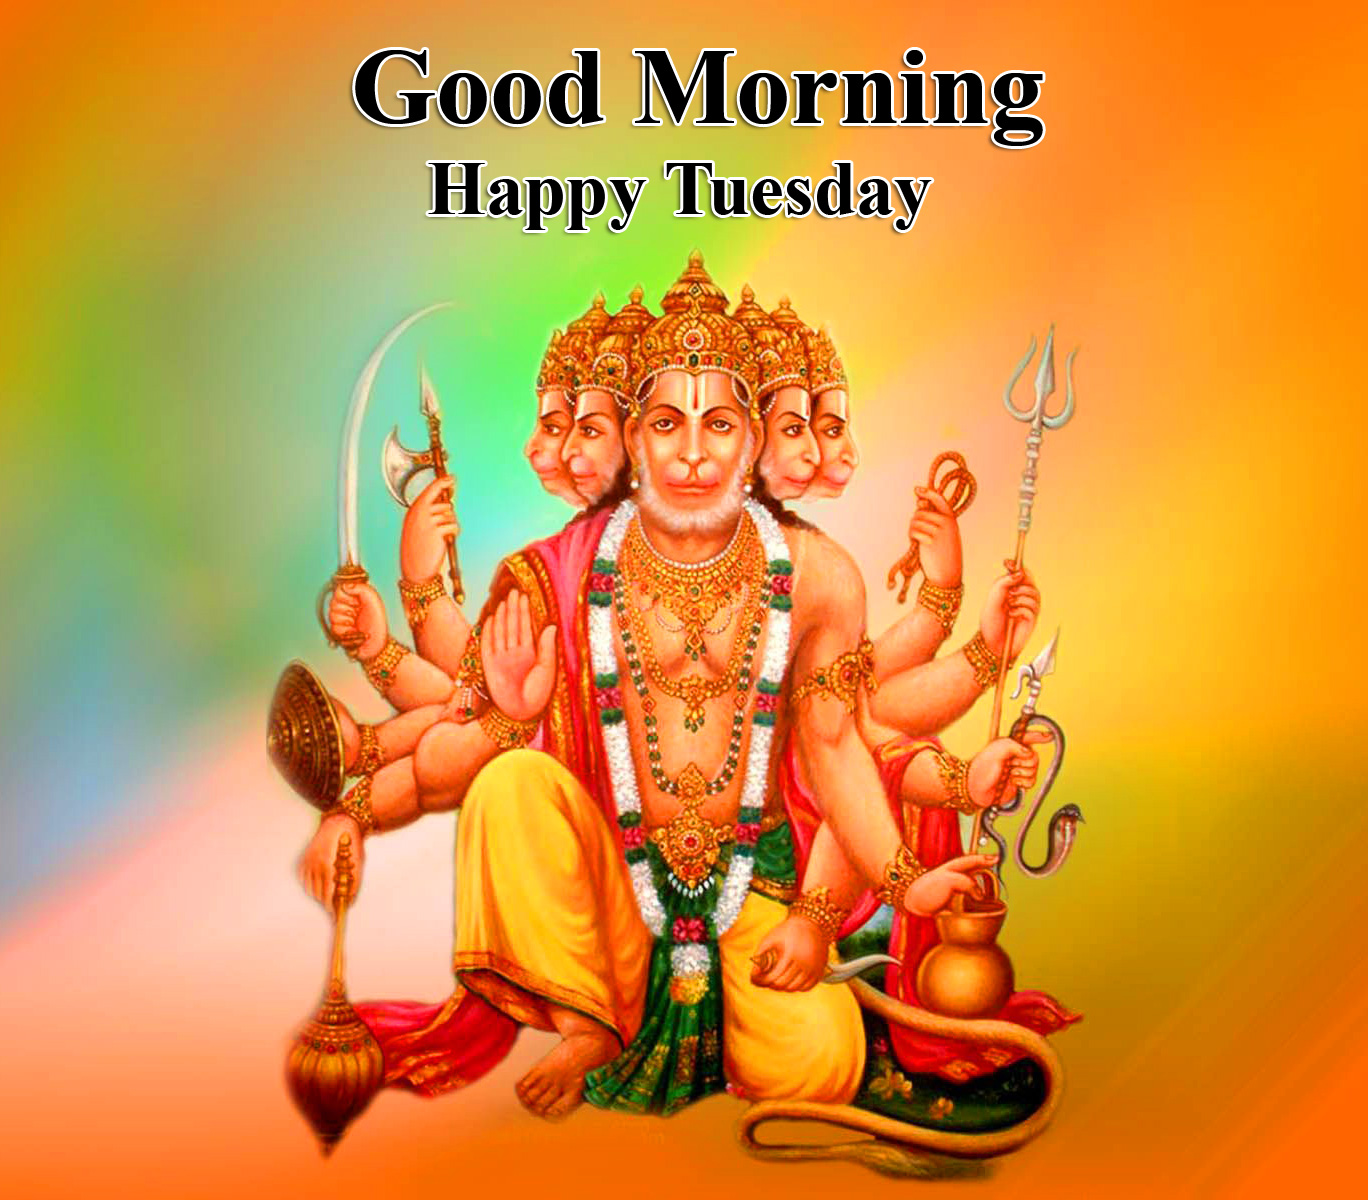 Best and Latest Hanuman Ji Good Morning Happy Tuesday Image